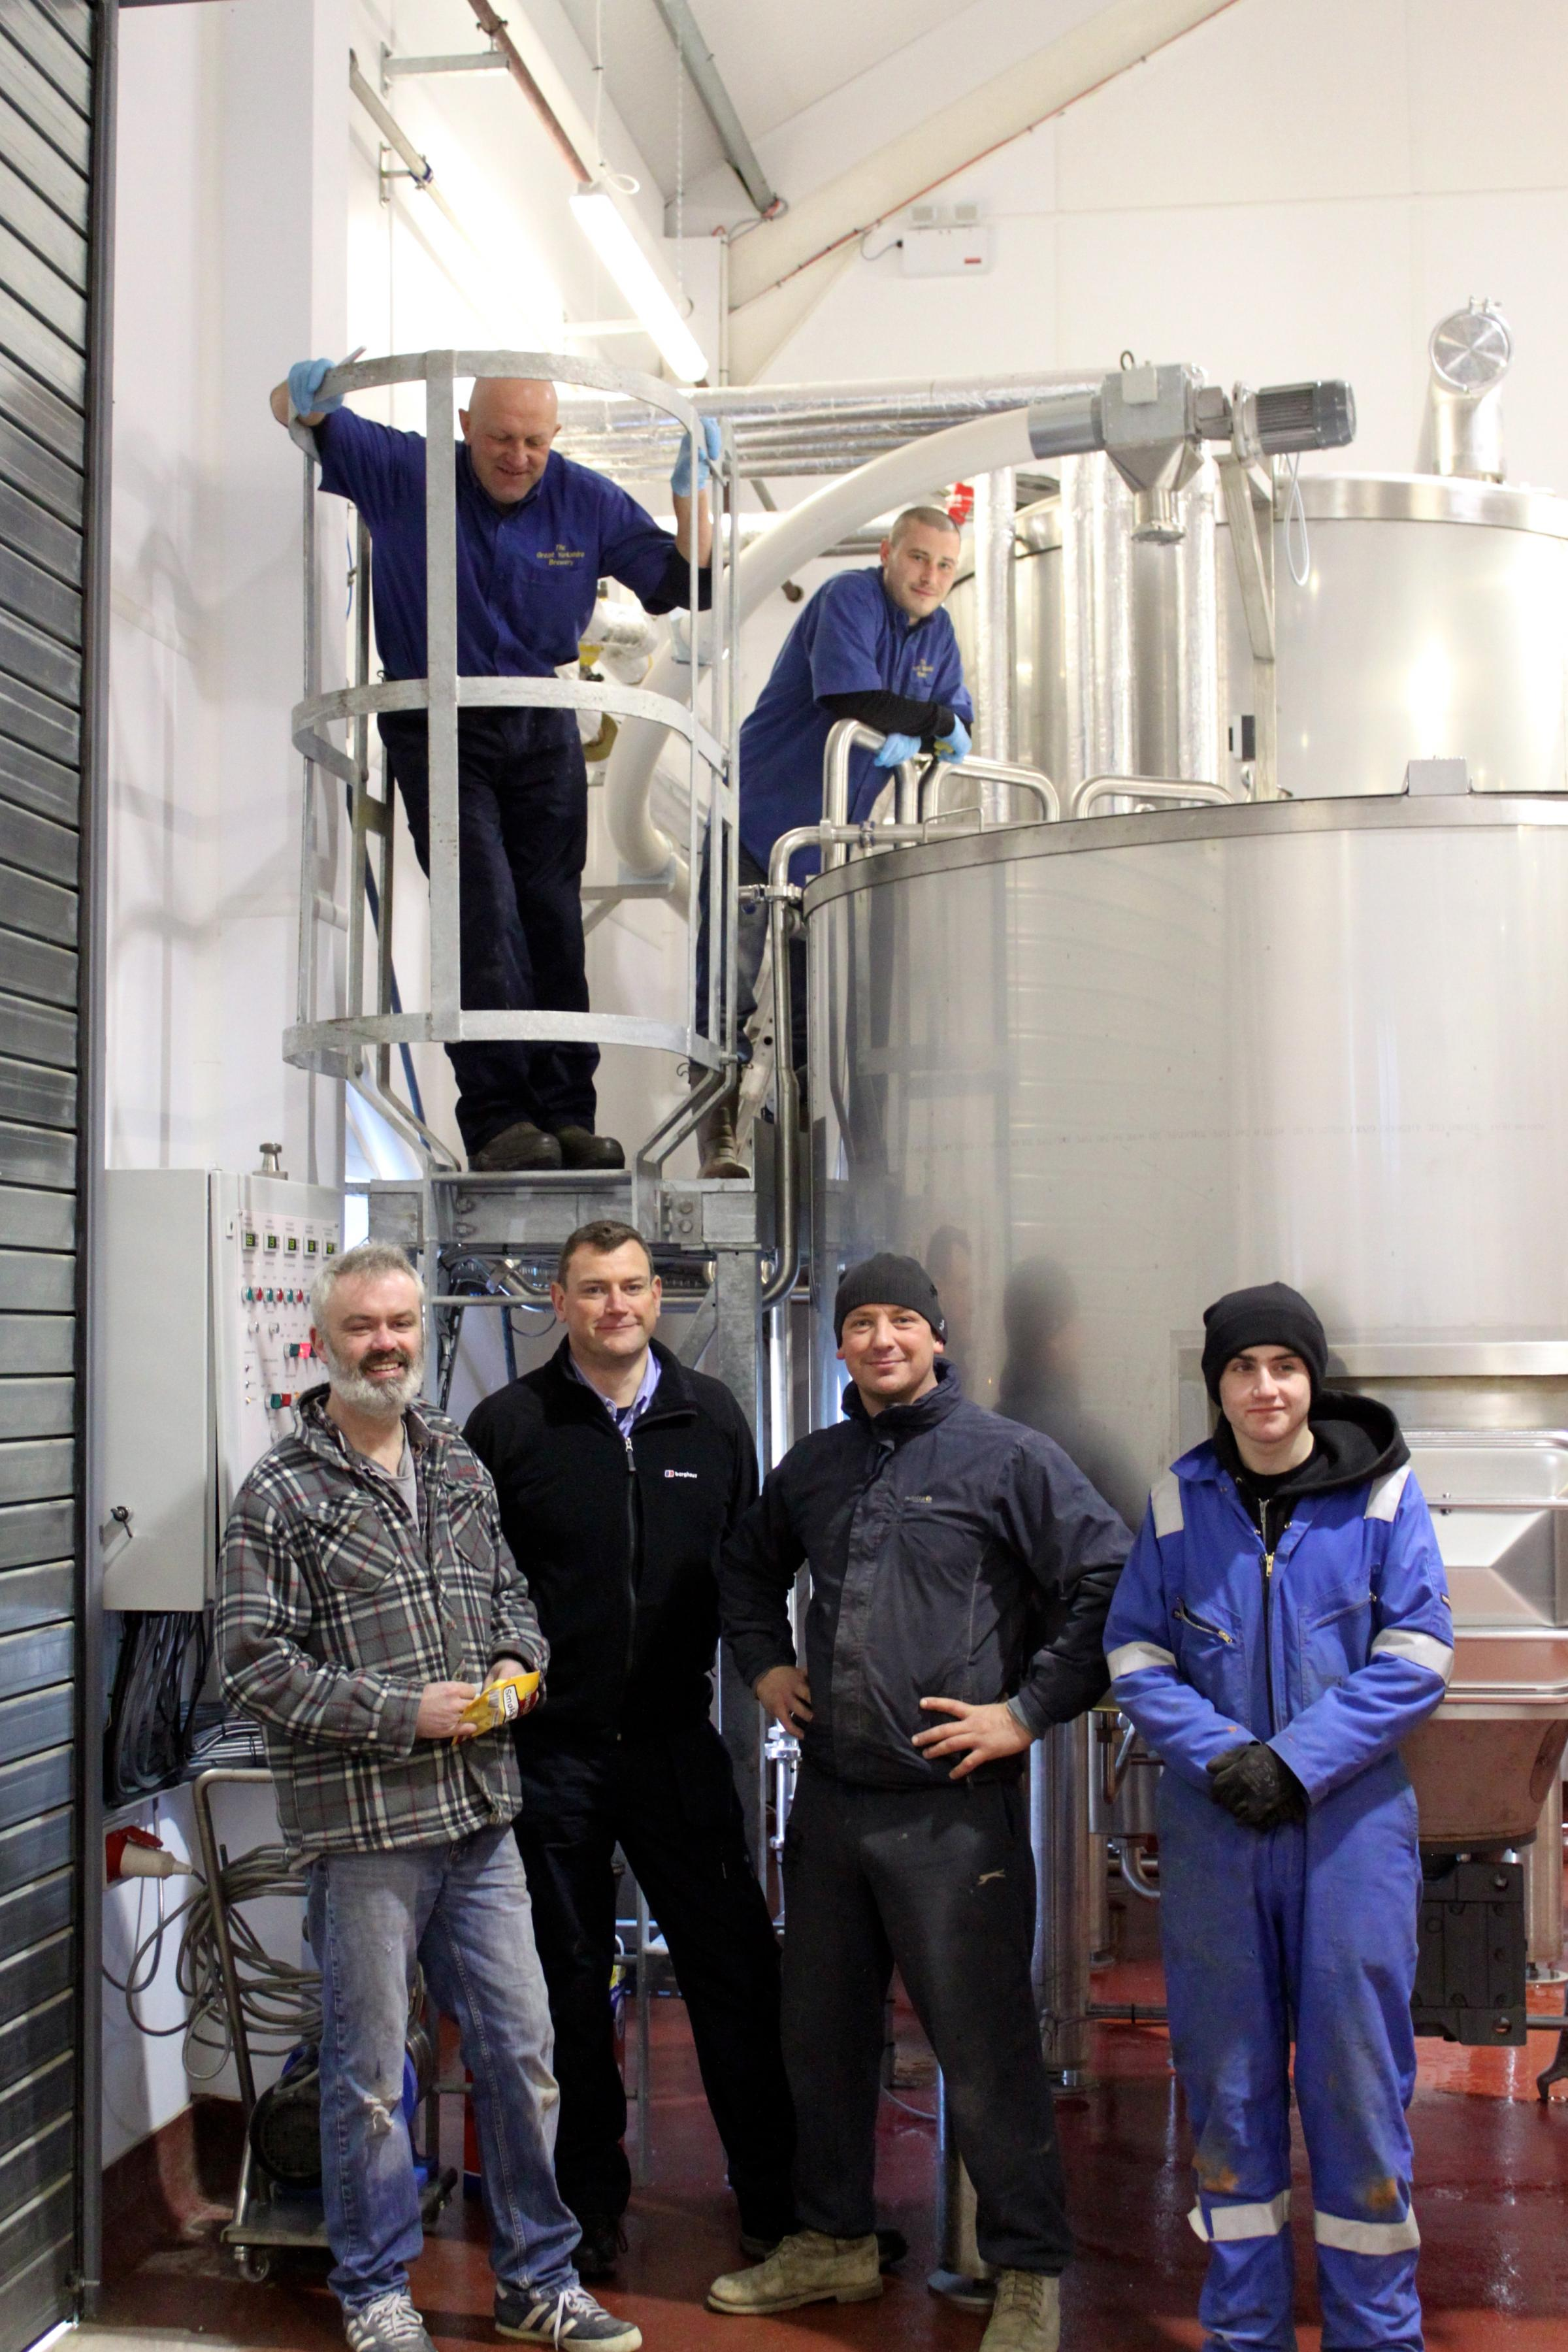 The team at Great Yorkshire Brewery